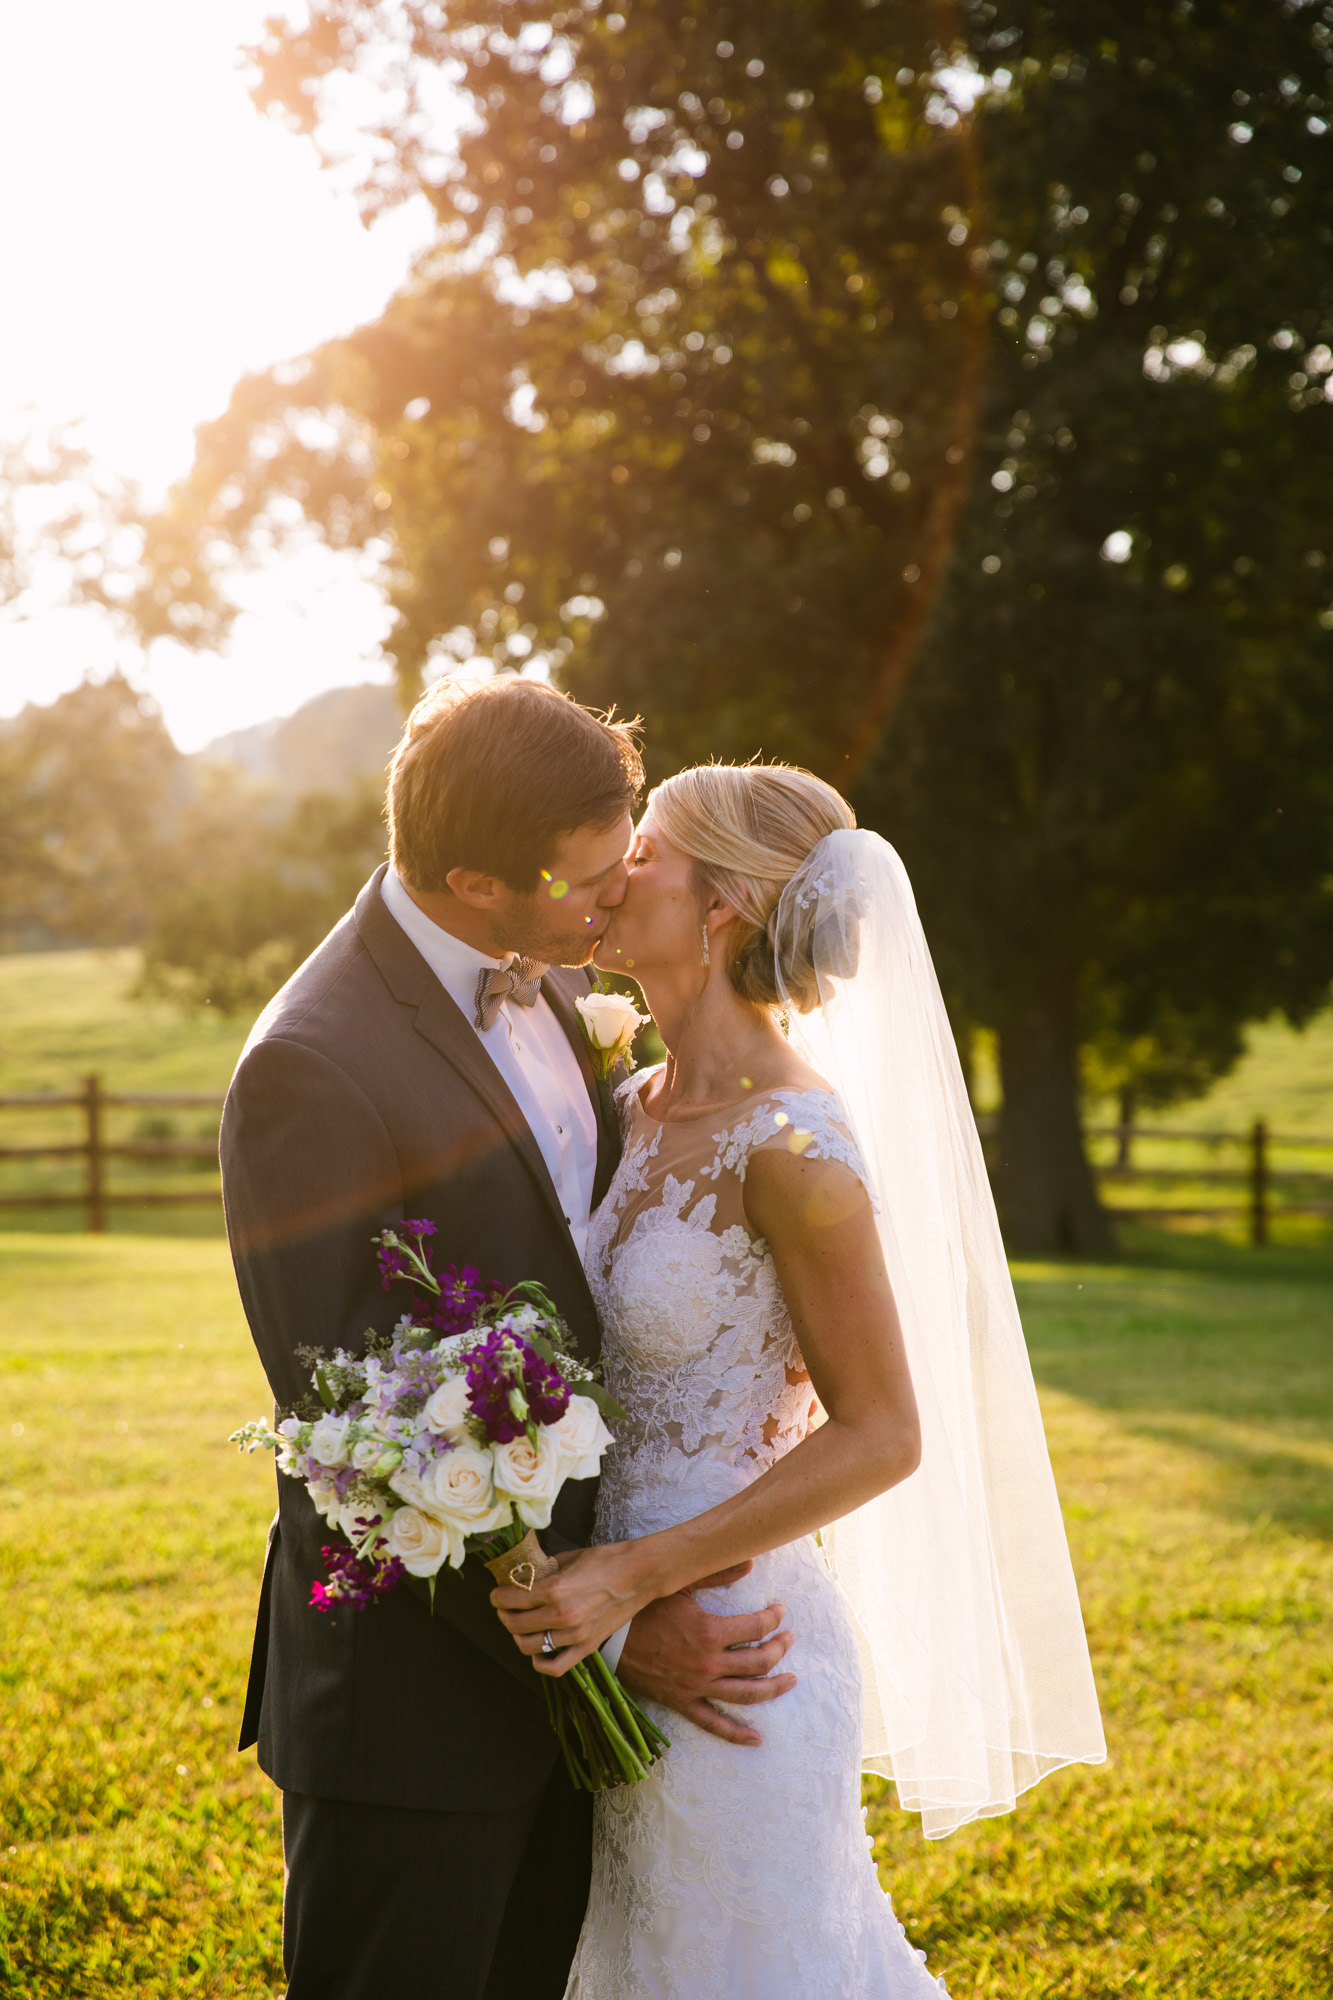 Waynesville, NC Wedding Photography | Bride and Groom Kissing in the Sunset